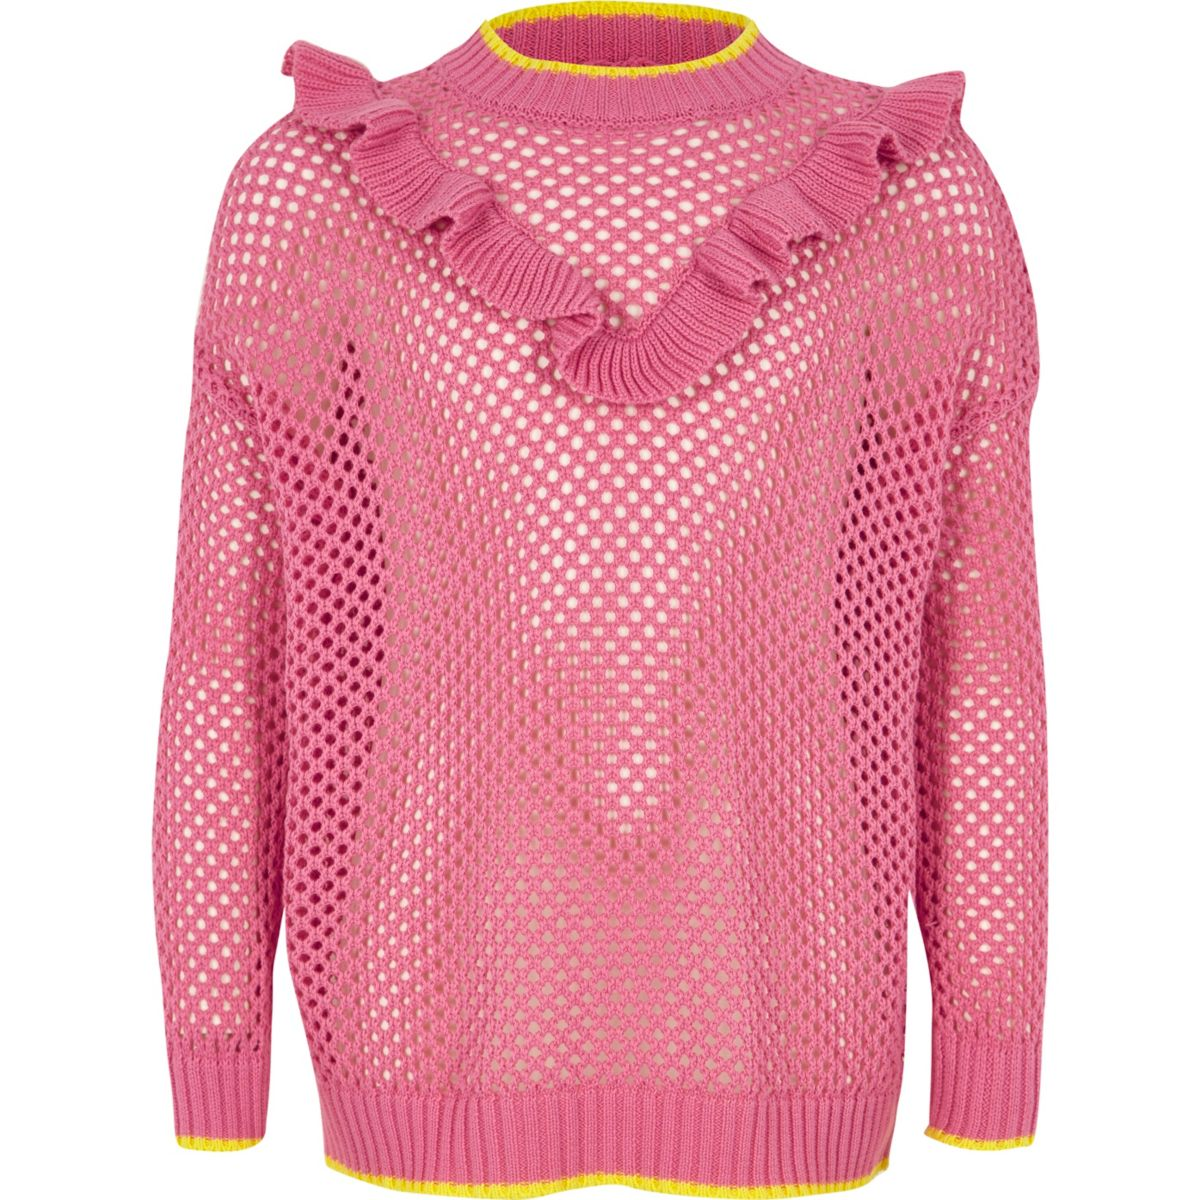 Girls pink open knit frill sweater